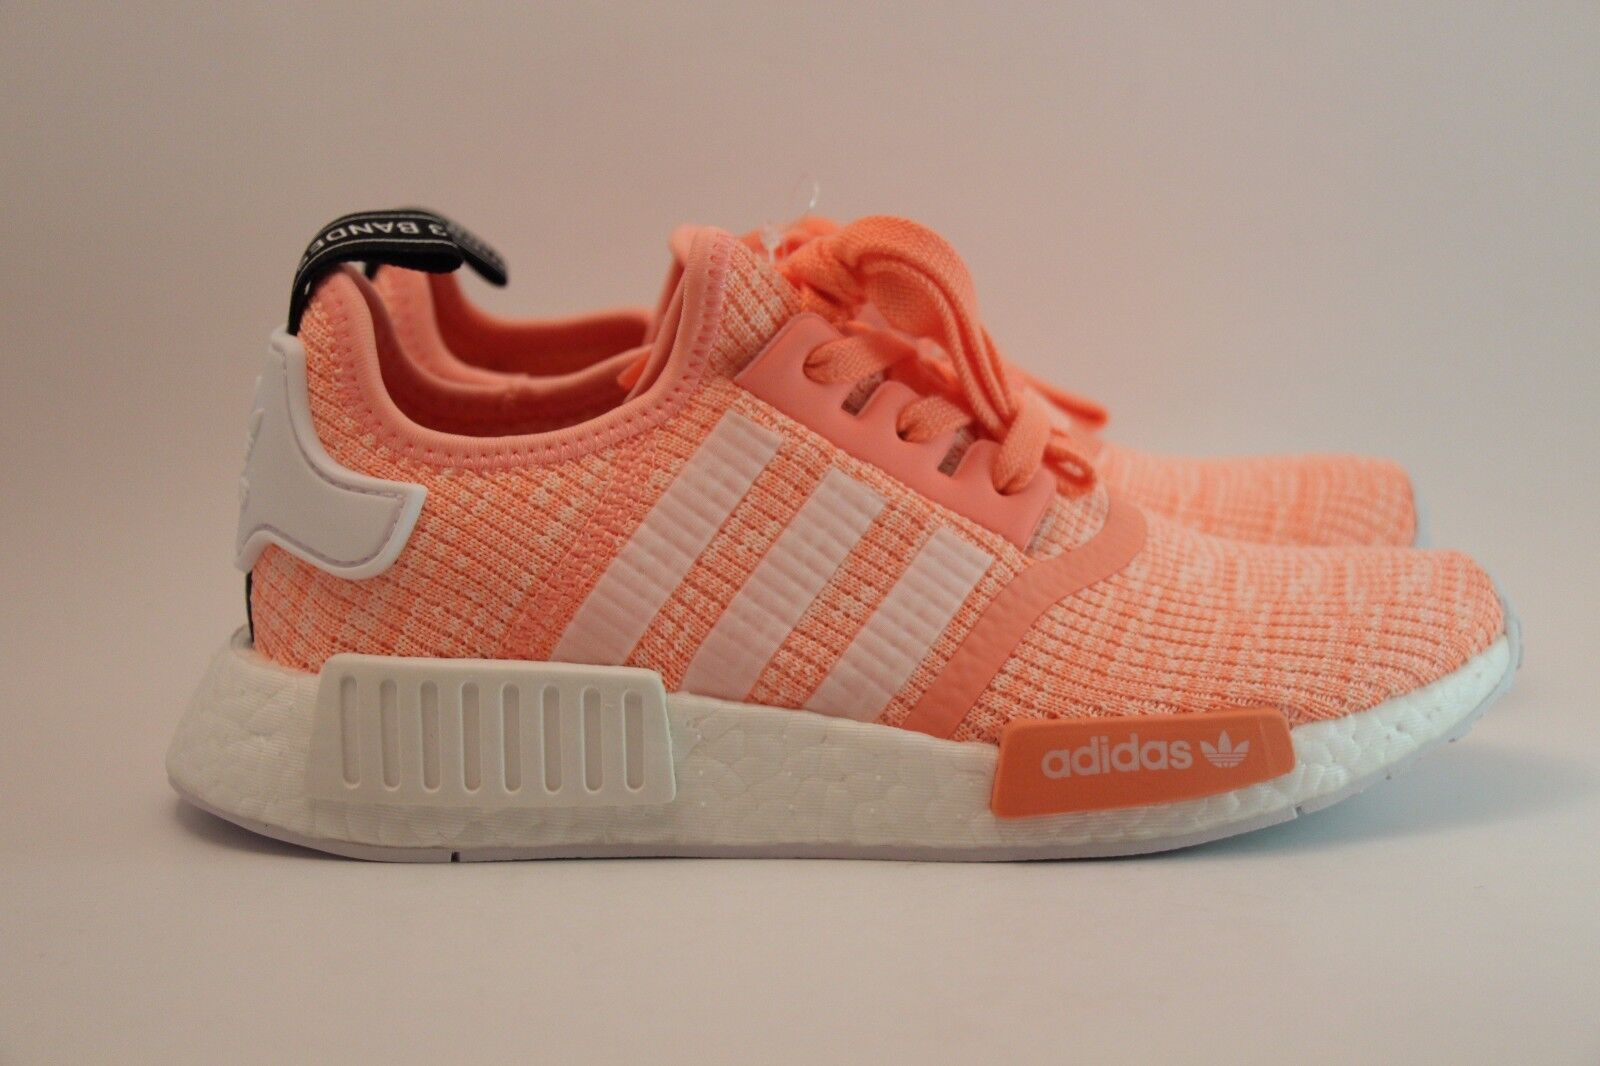 ADIDAS NMD R1 BY3034 Sun Glow Pink WOMEN SHOE SIZE 6.5 100% AUTHENTIC NEW The latest discount shoes for men and women